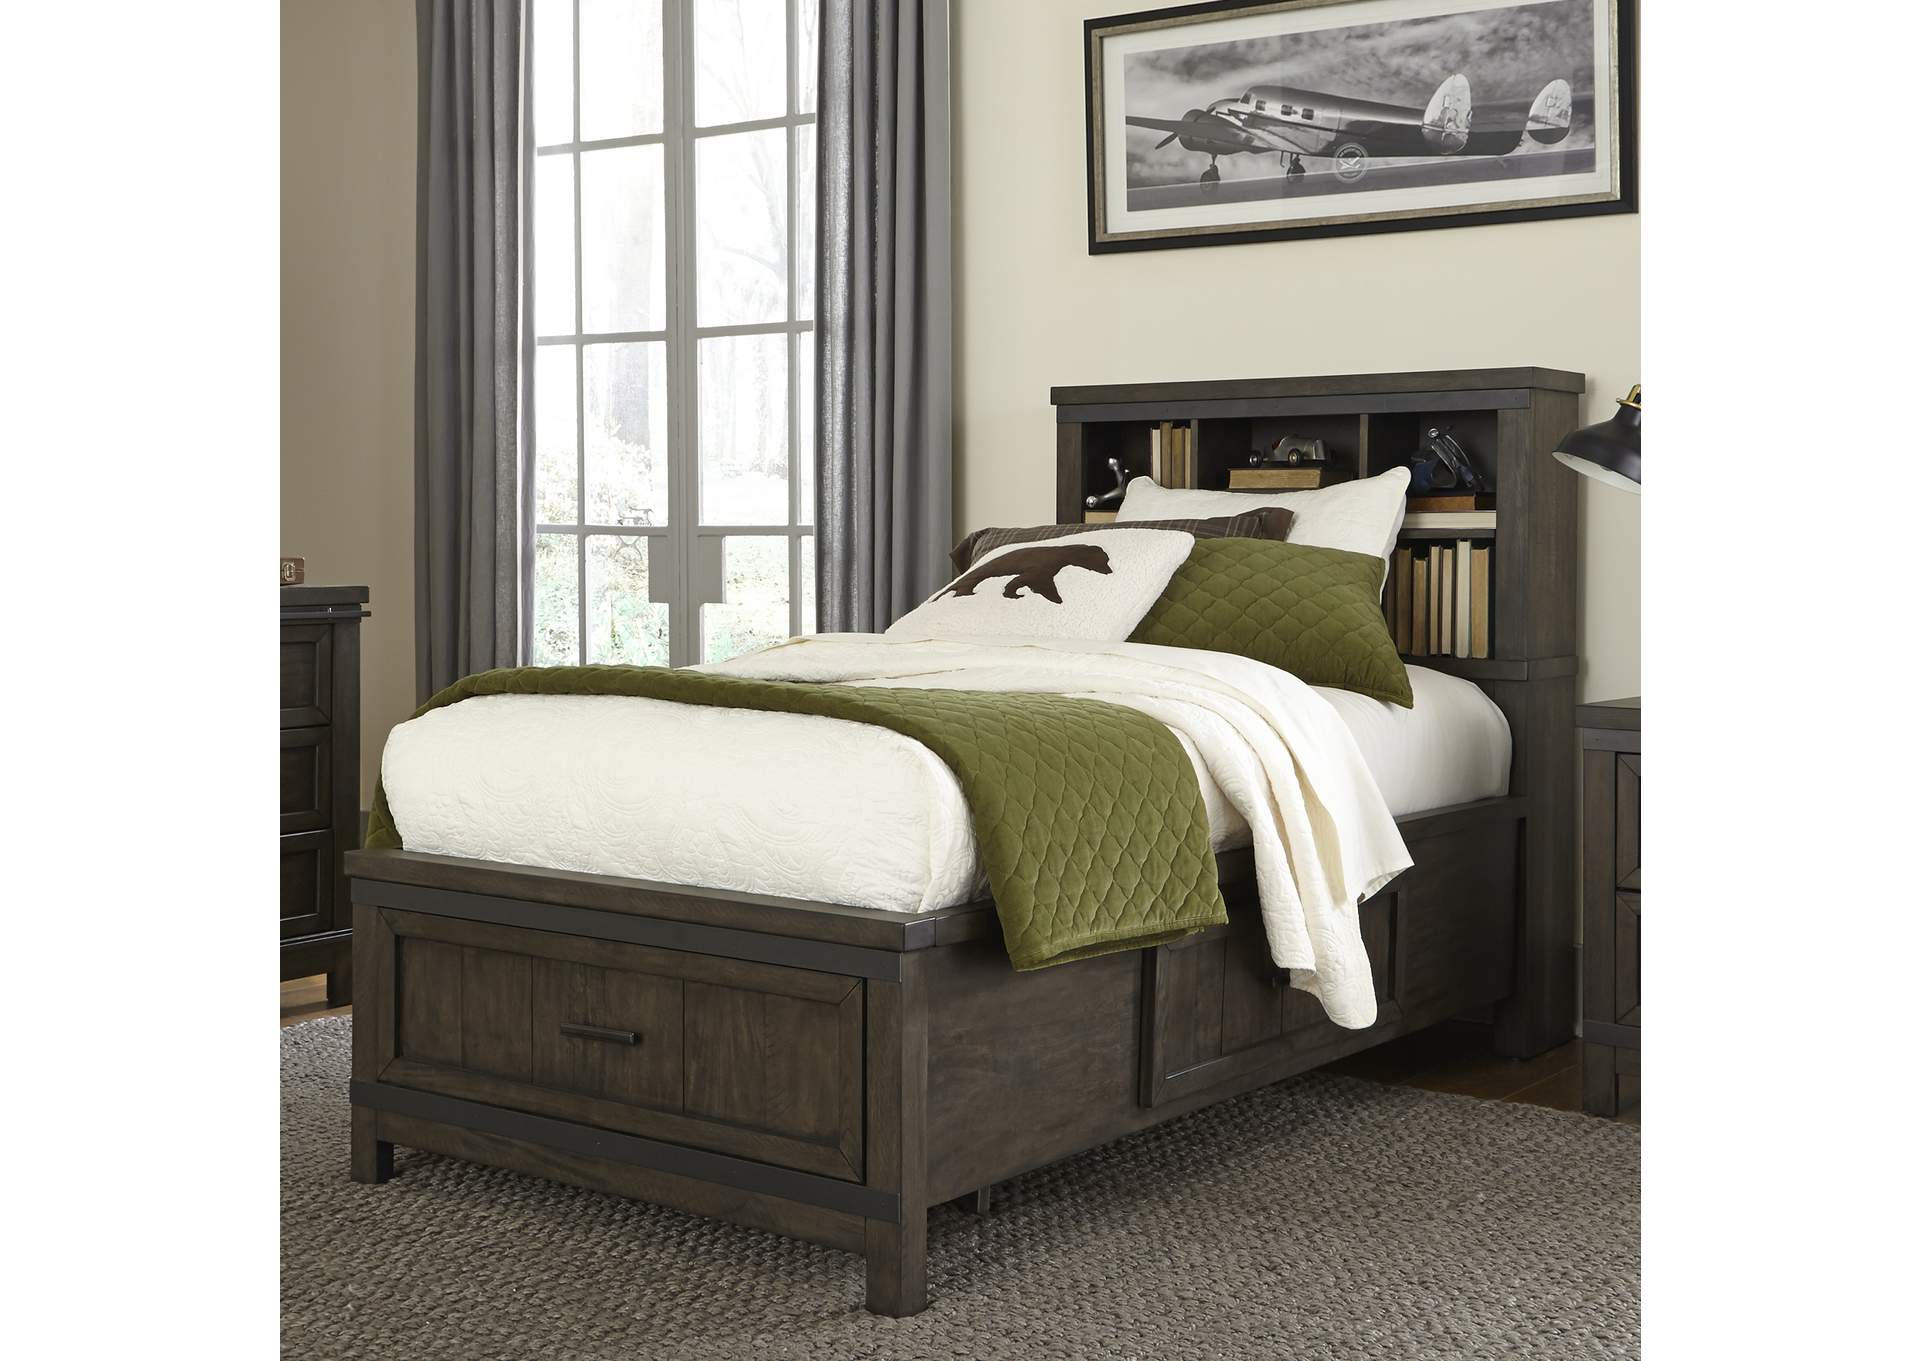 Hornell Furniture Outlet Thornwood Hills Gray Twin Storage